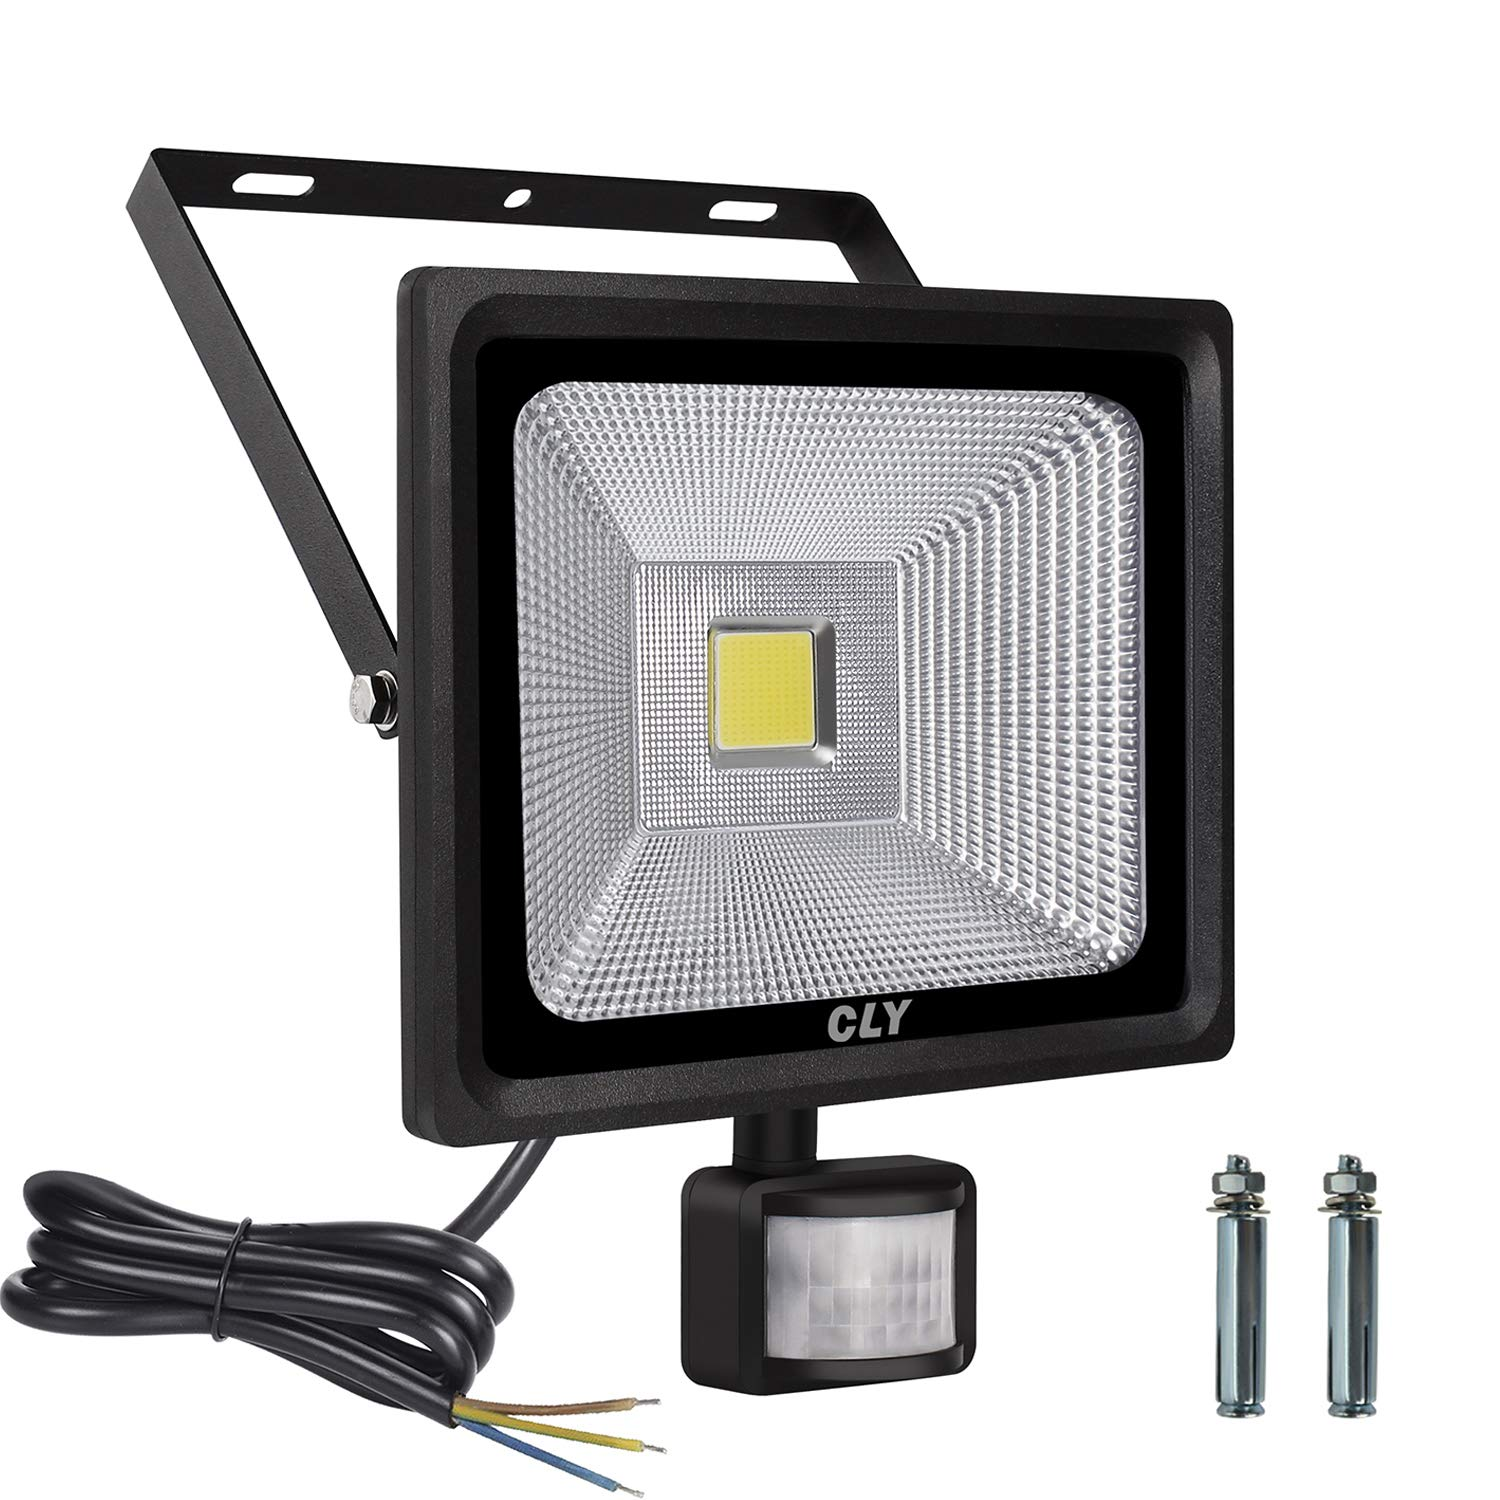 LTE 30W LED Motion Sensor Floodlight Outdoor Super Bright 2400 Lumens Security Flood Lights Waterproof IP65 Cool White 6000K